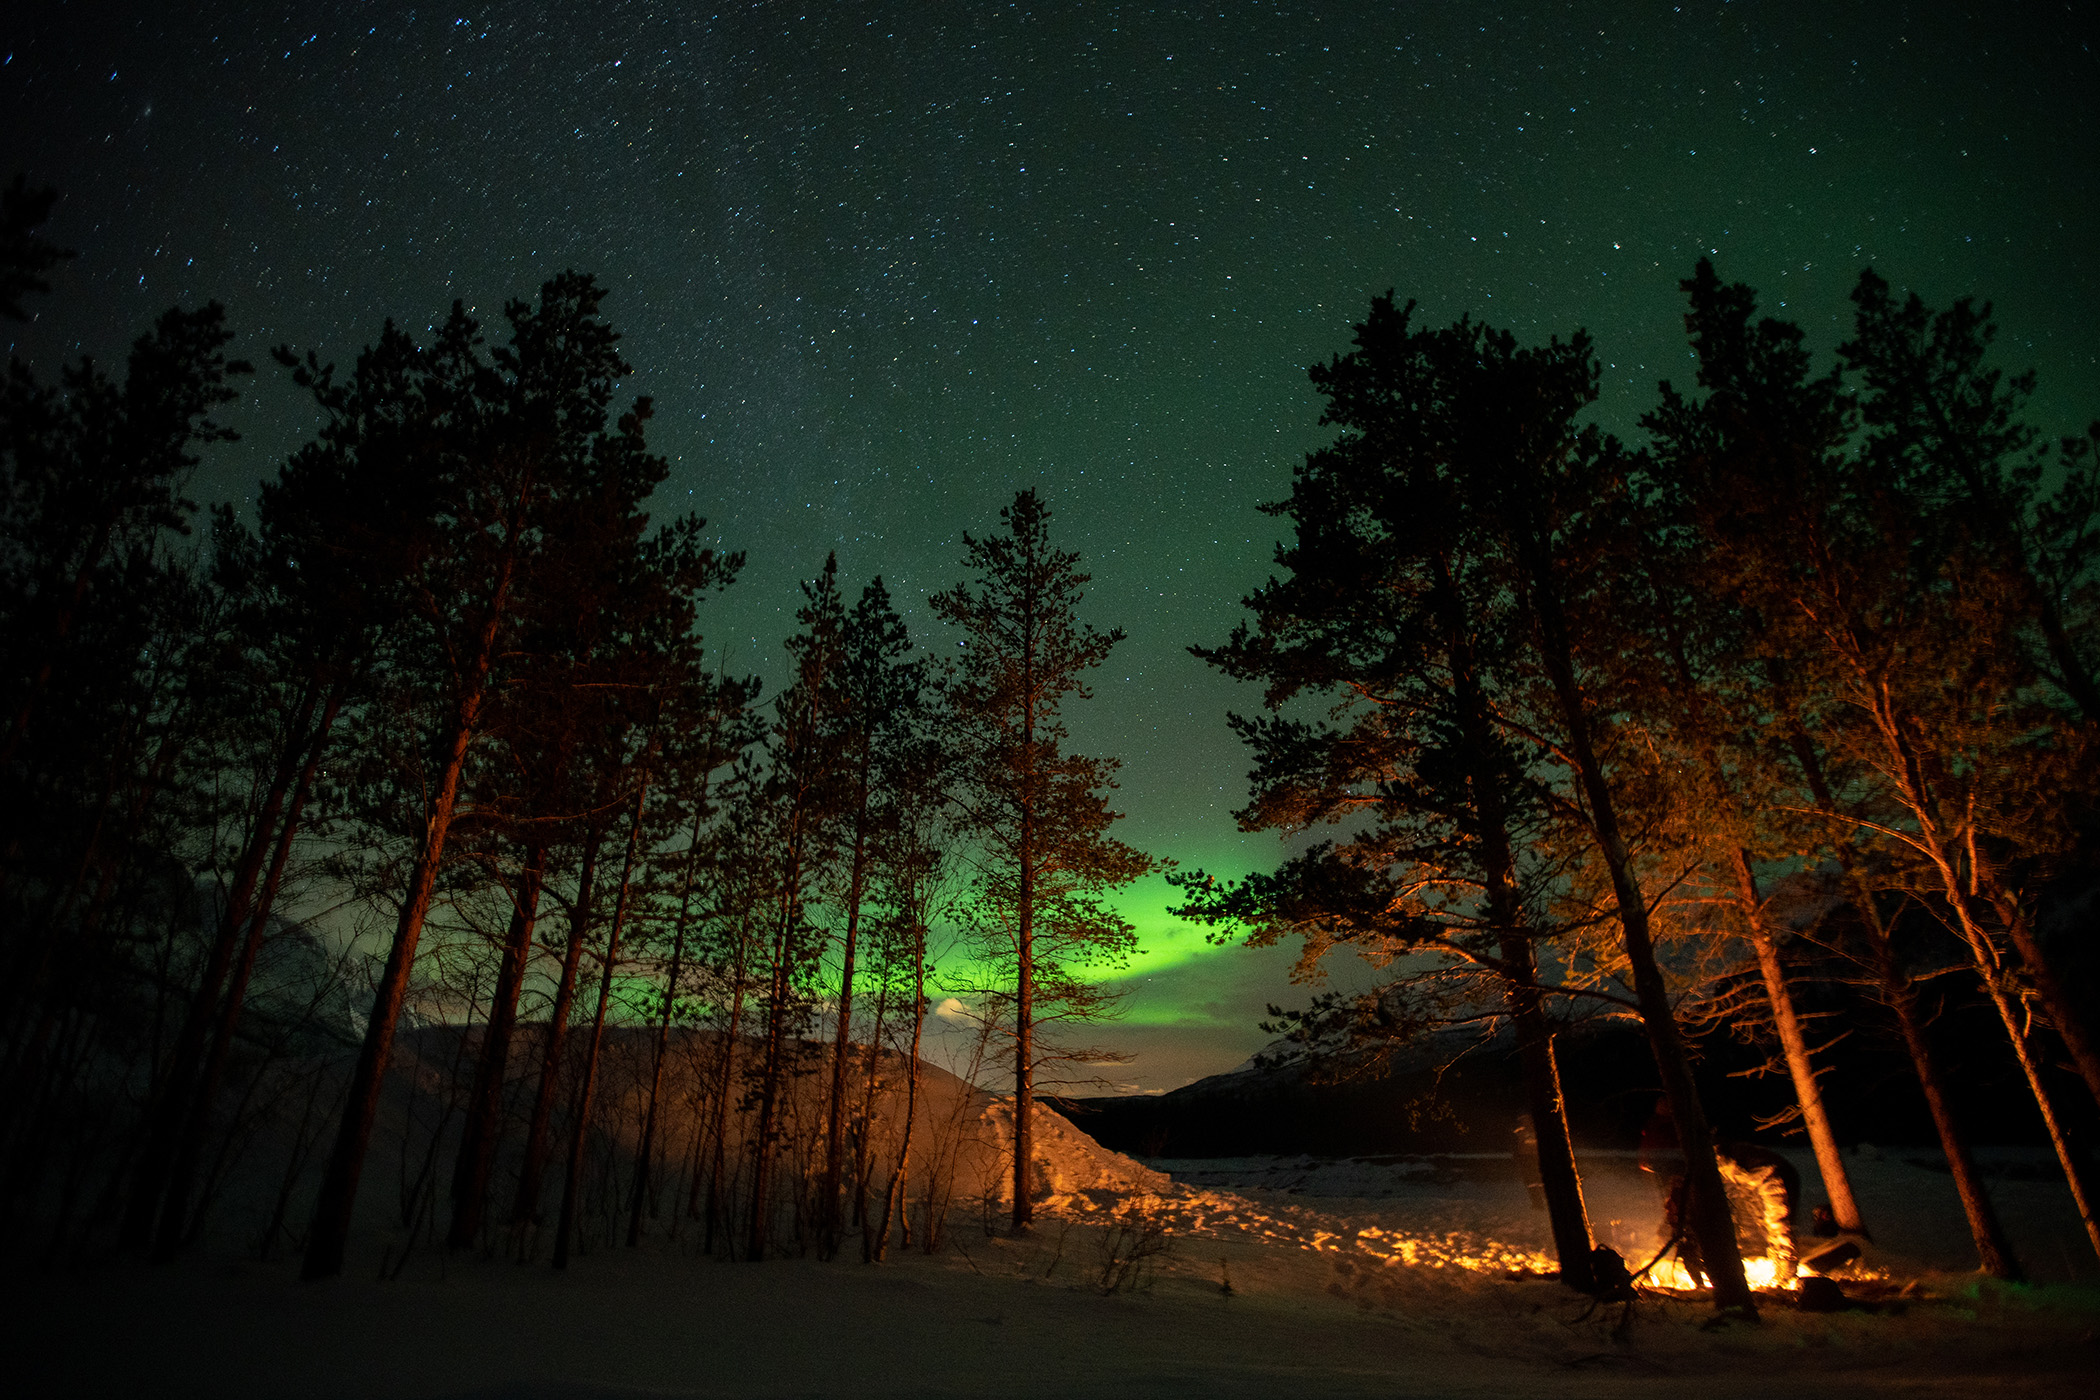 Campfire in the forest with northern lights